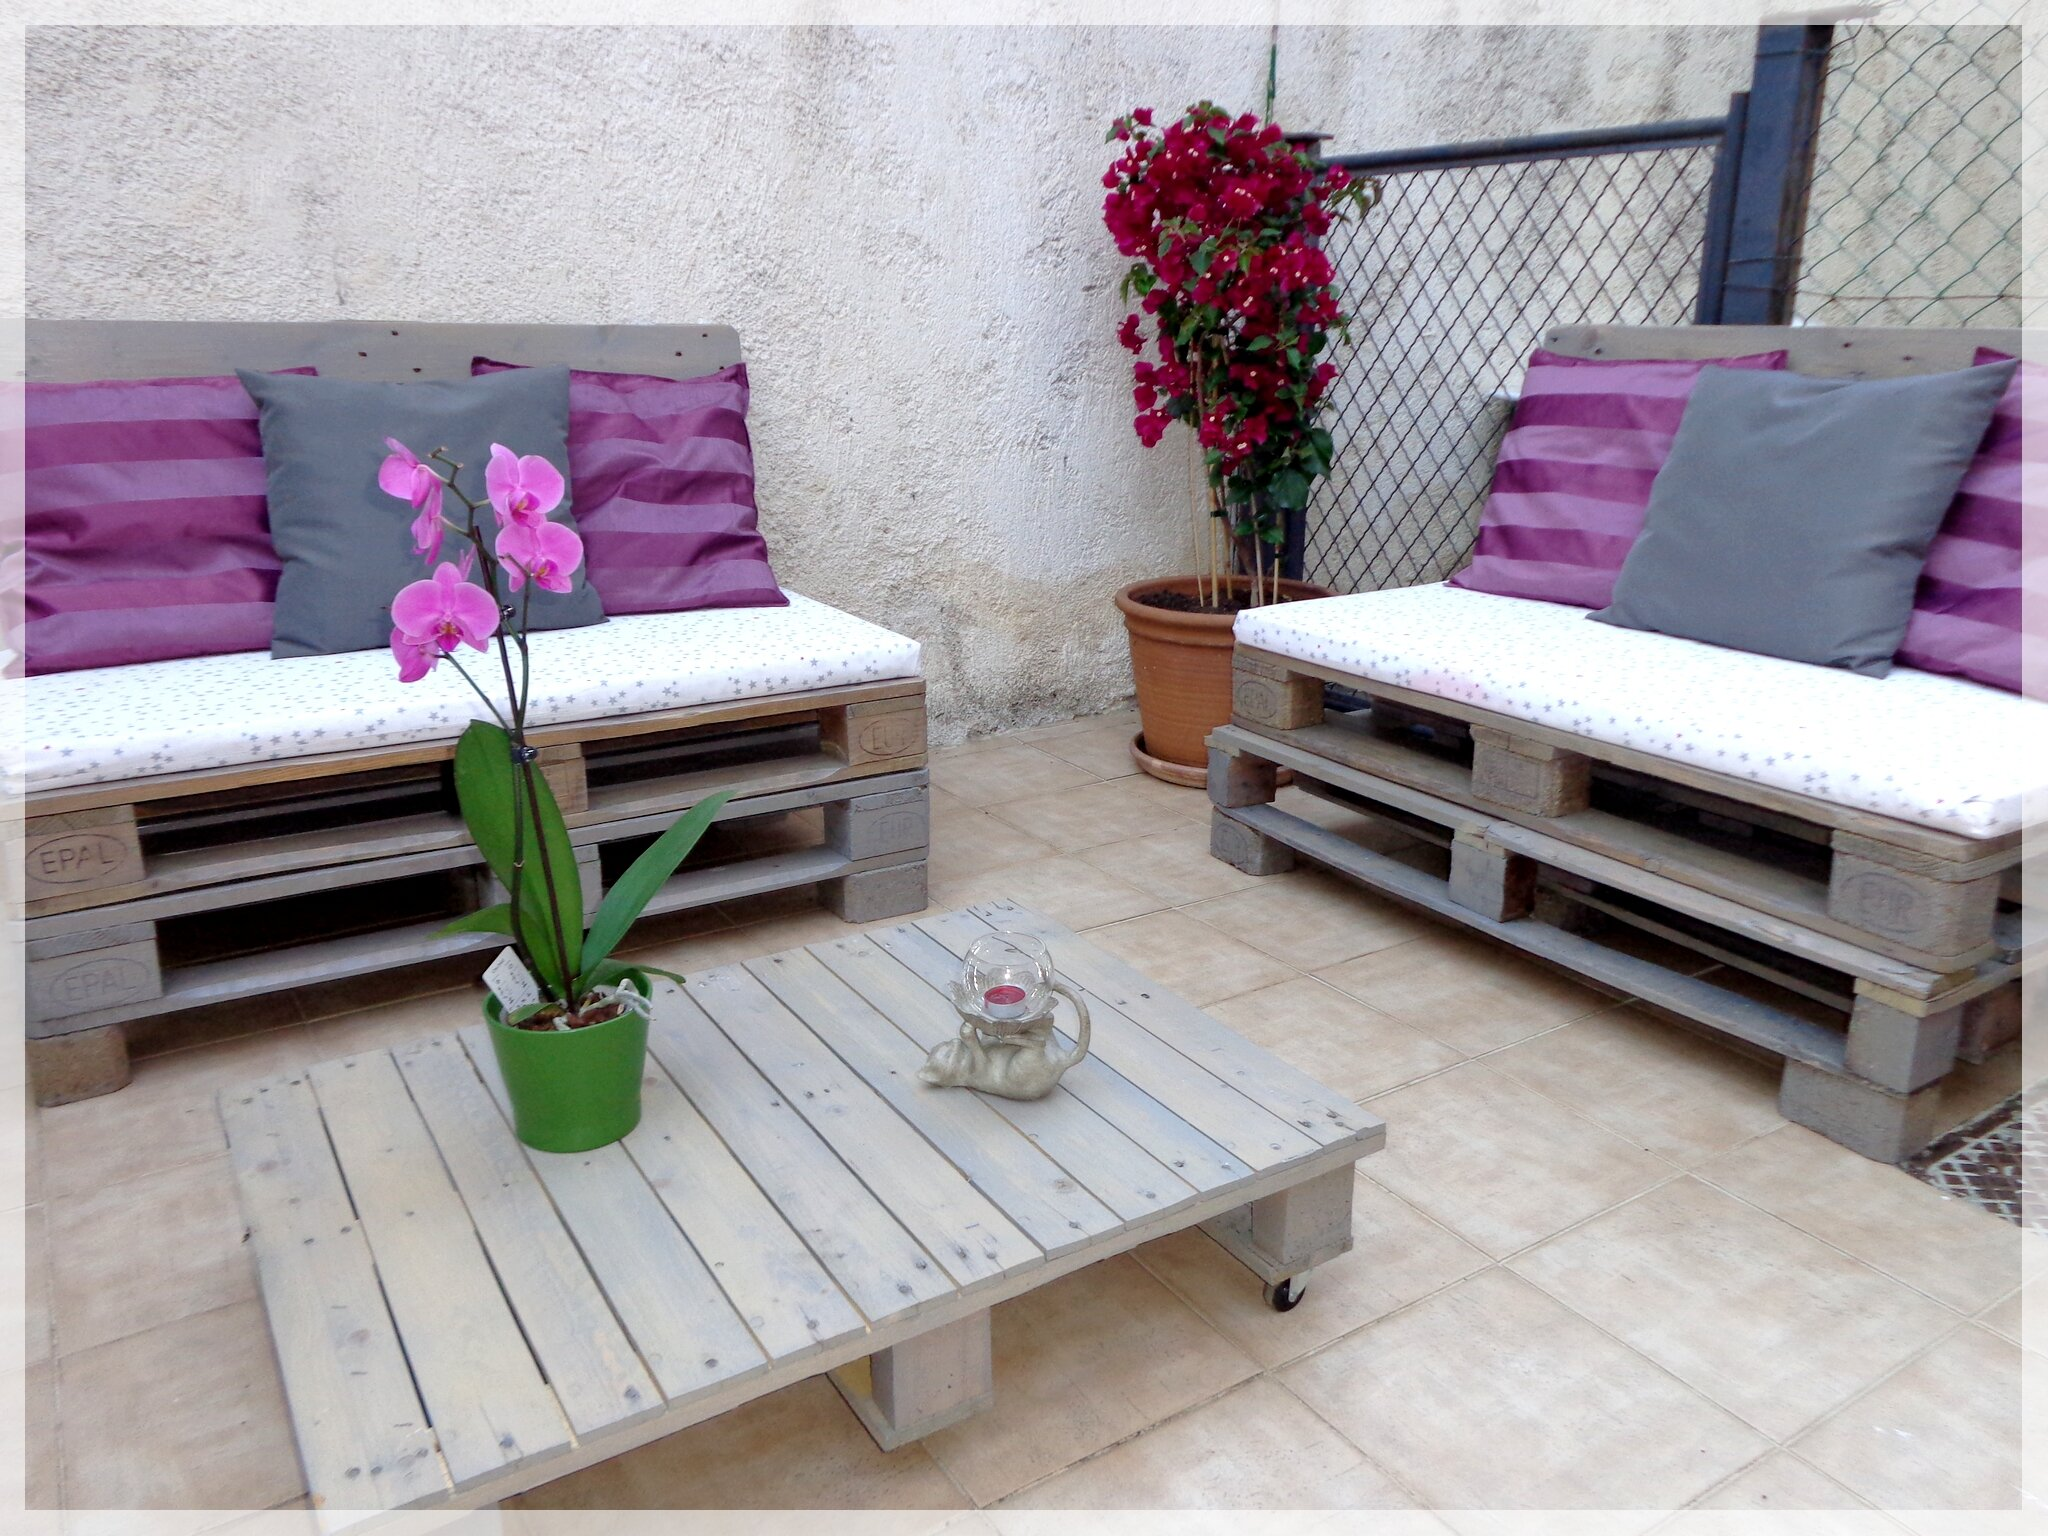 Diy salon de jardin la patte de notablueta for Salon jardin palette coussin